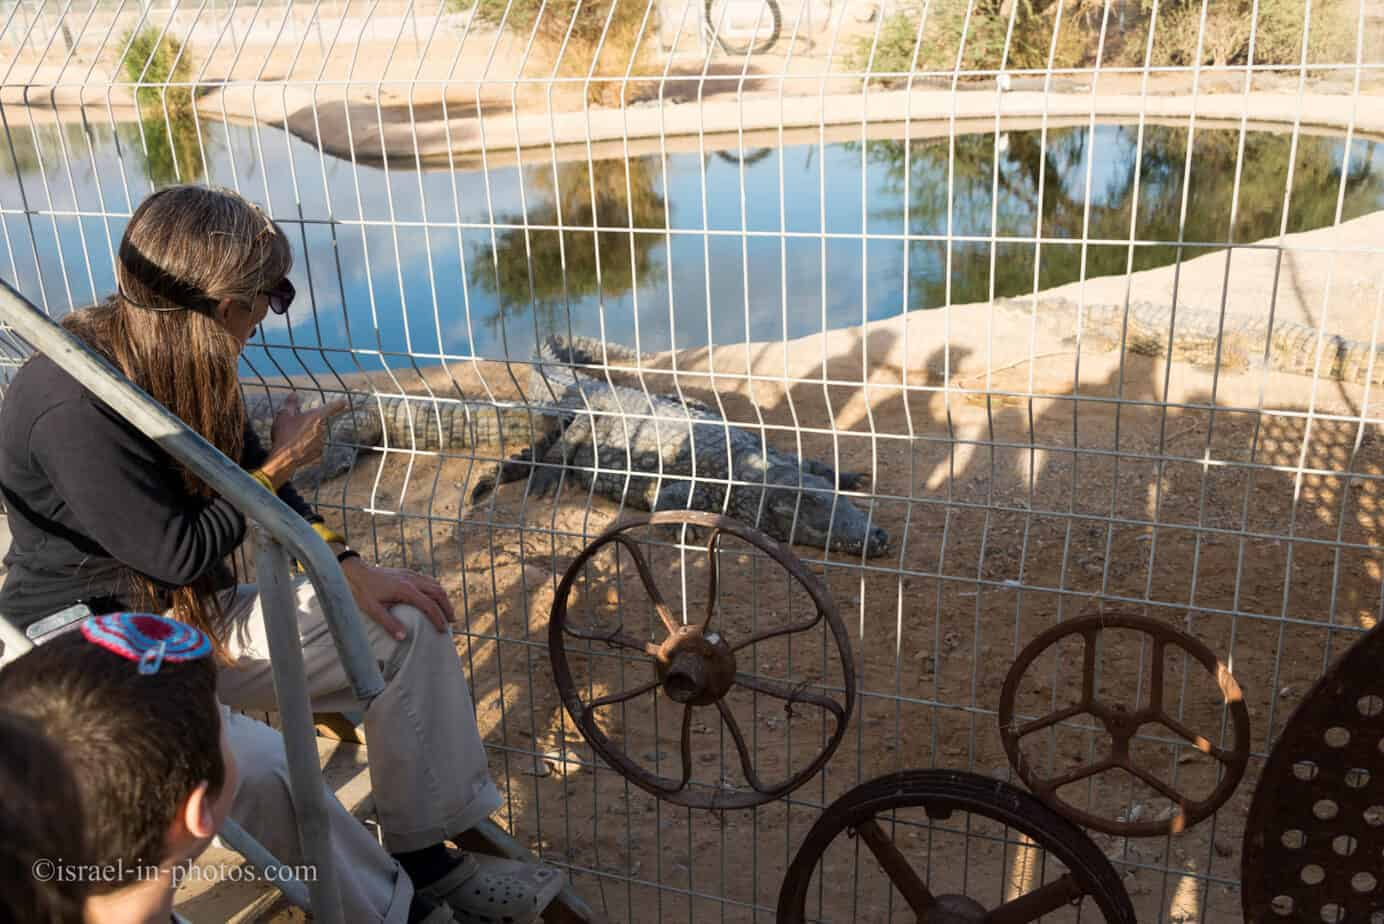 At Crocoloco Crocodile Farm, Israel